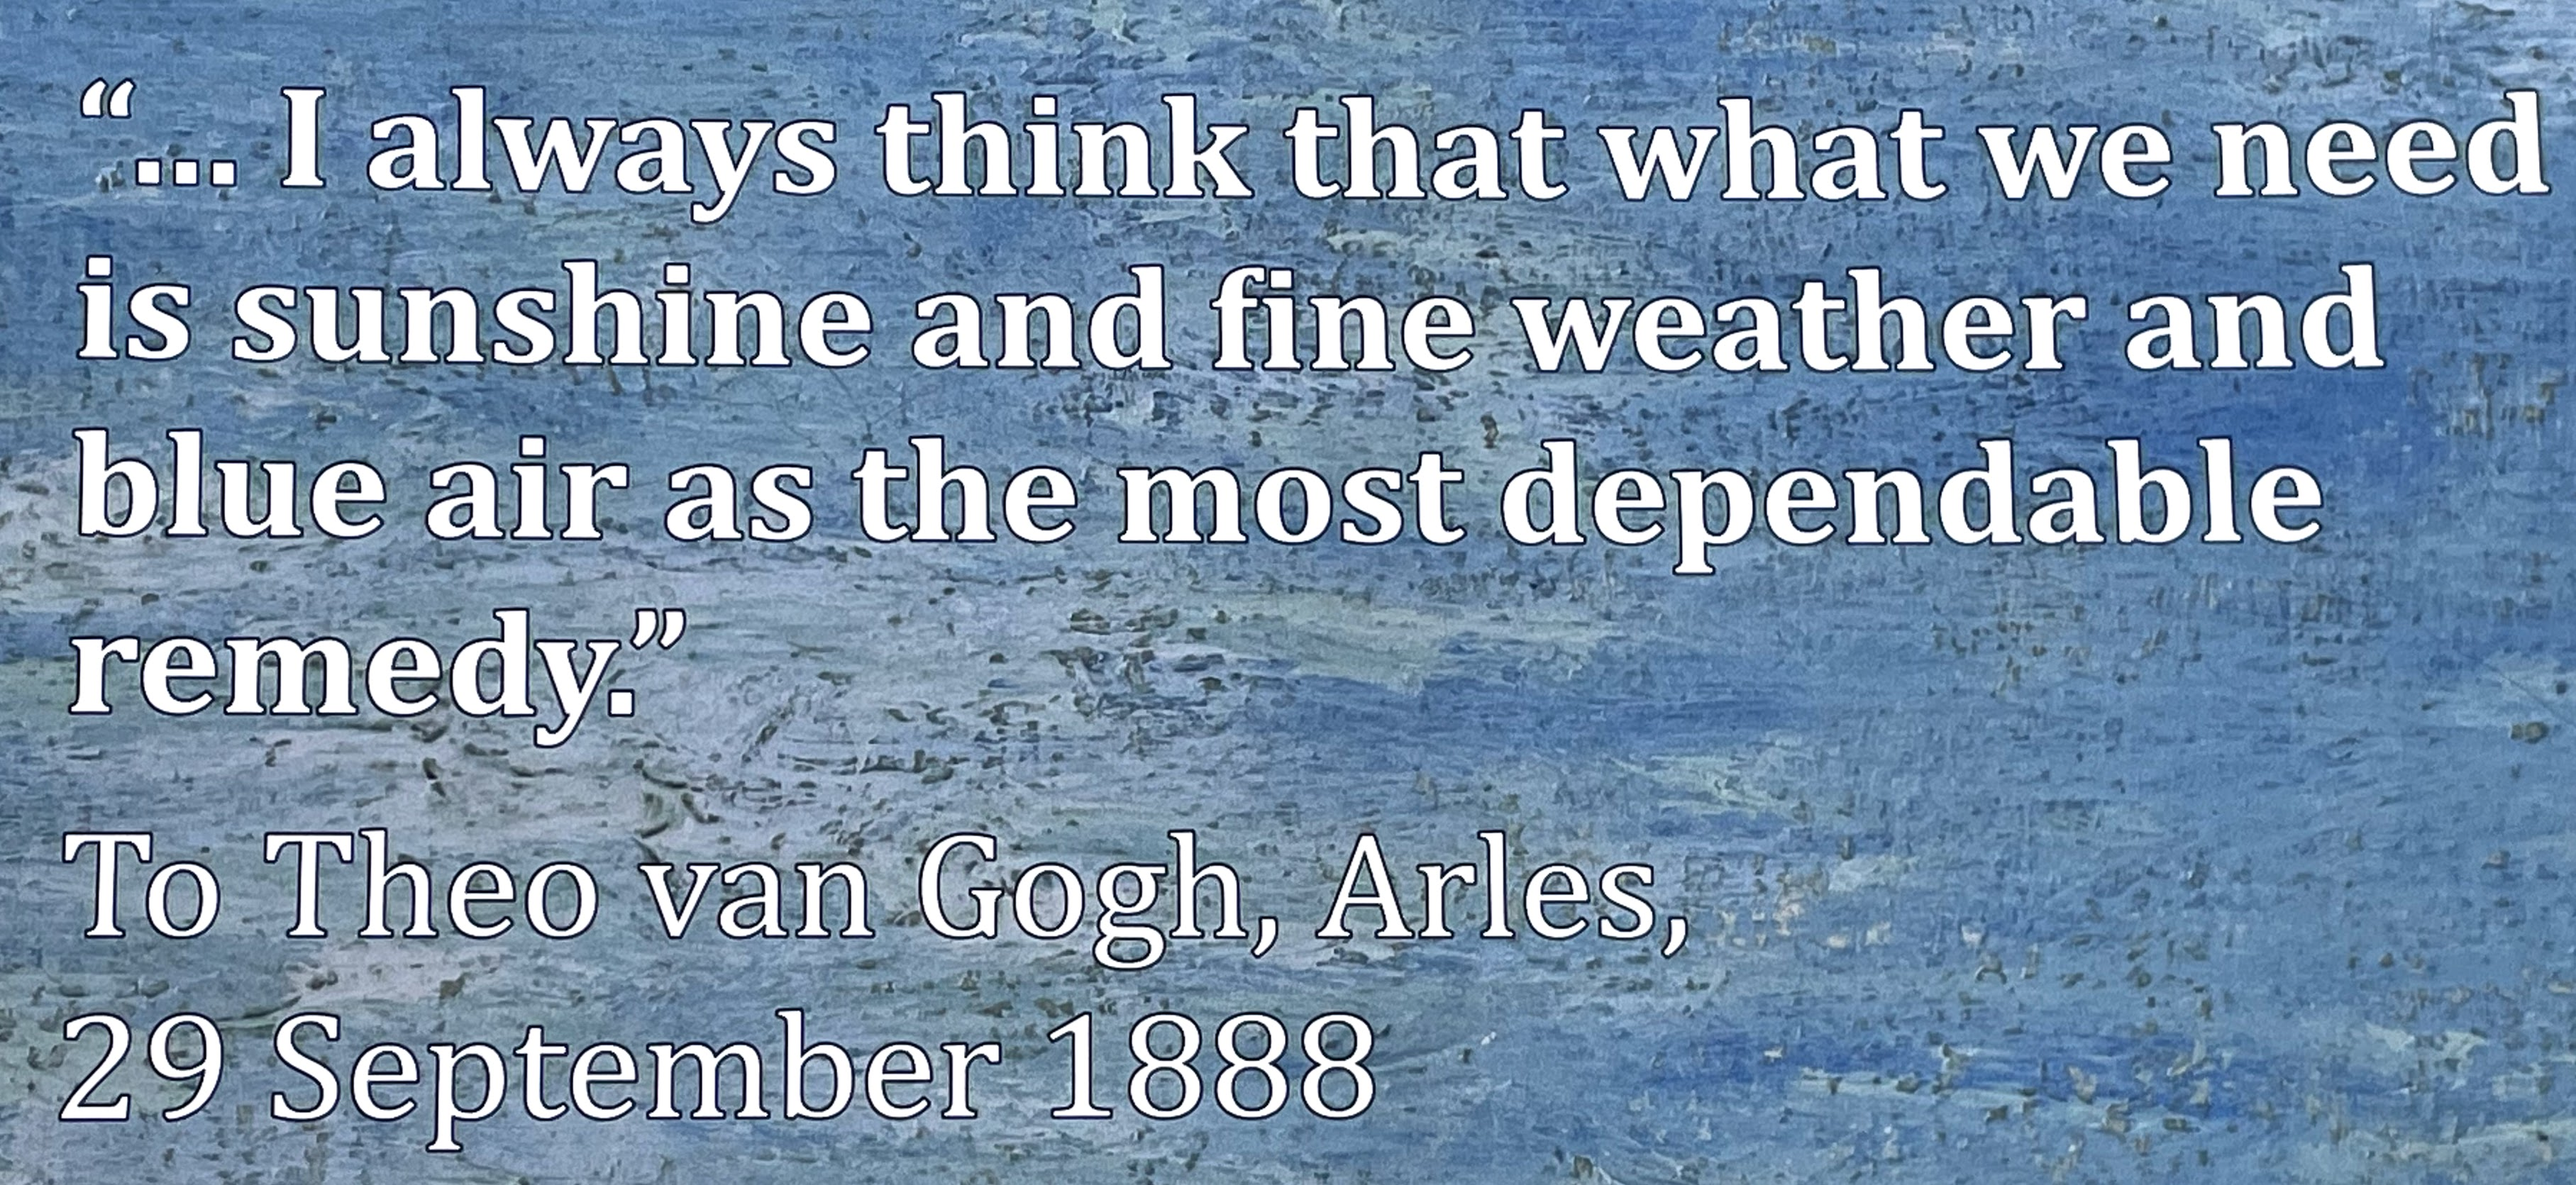 """Quote, text against van Gogh brushstrokes: """"...I always think that what we need is sunshine and fine weather and blue air as the most dependable remedy."""" To Theo van Gogh, Arles, 29 September 1888"""